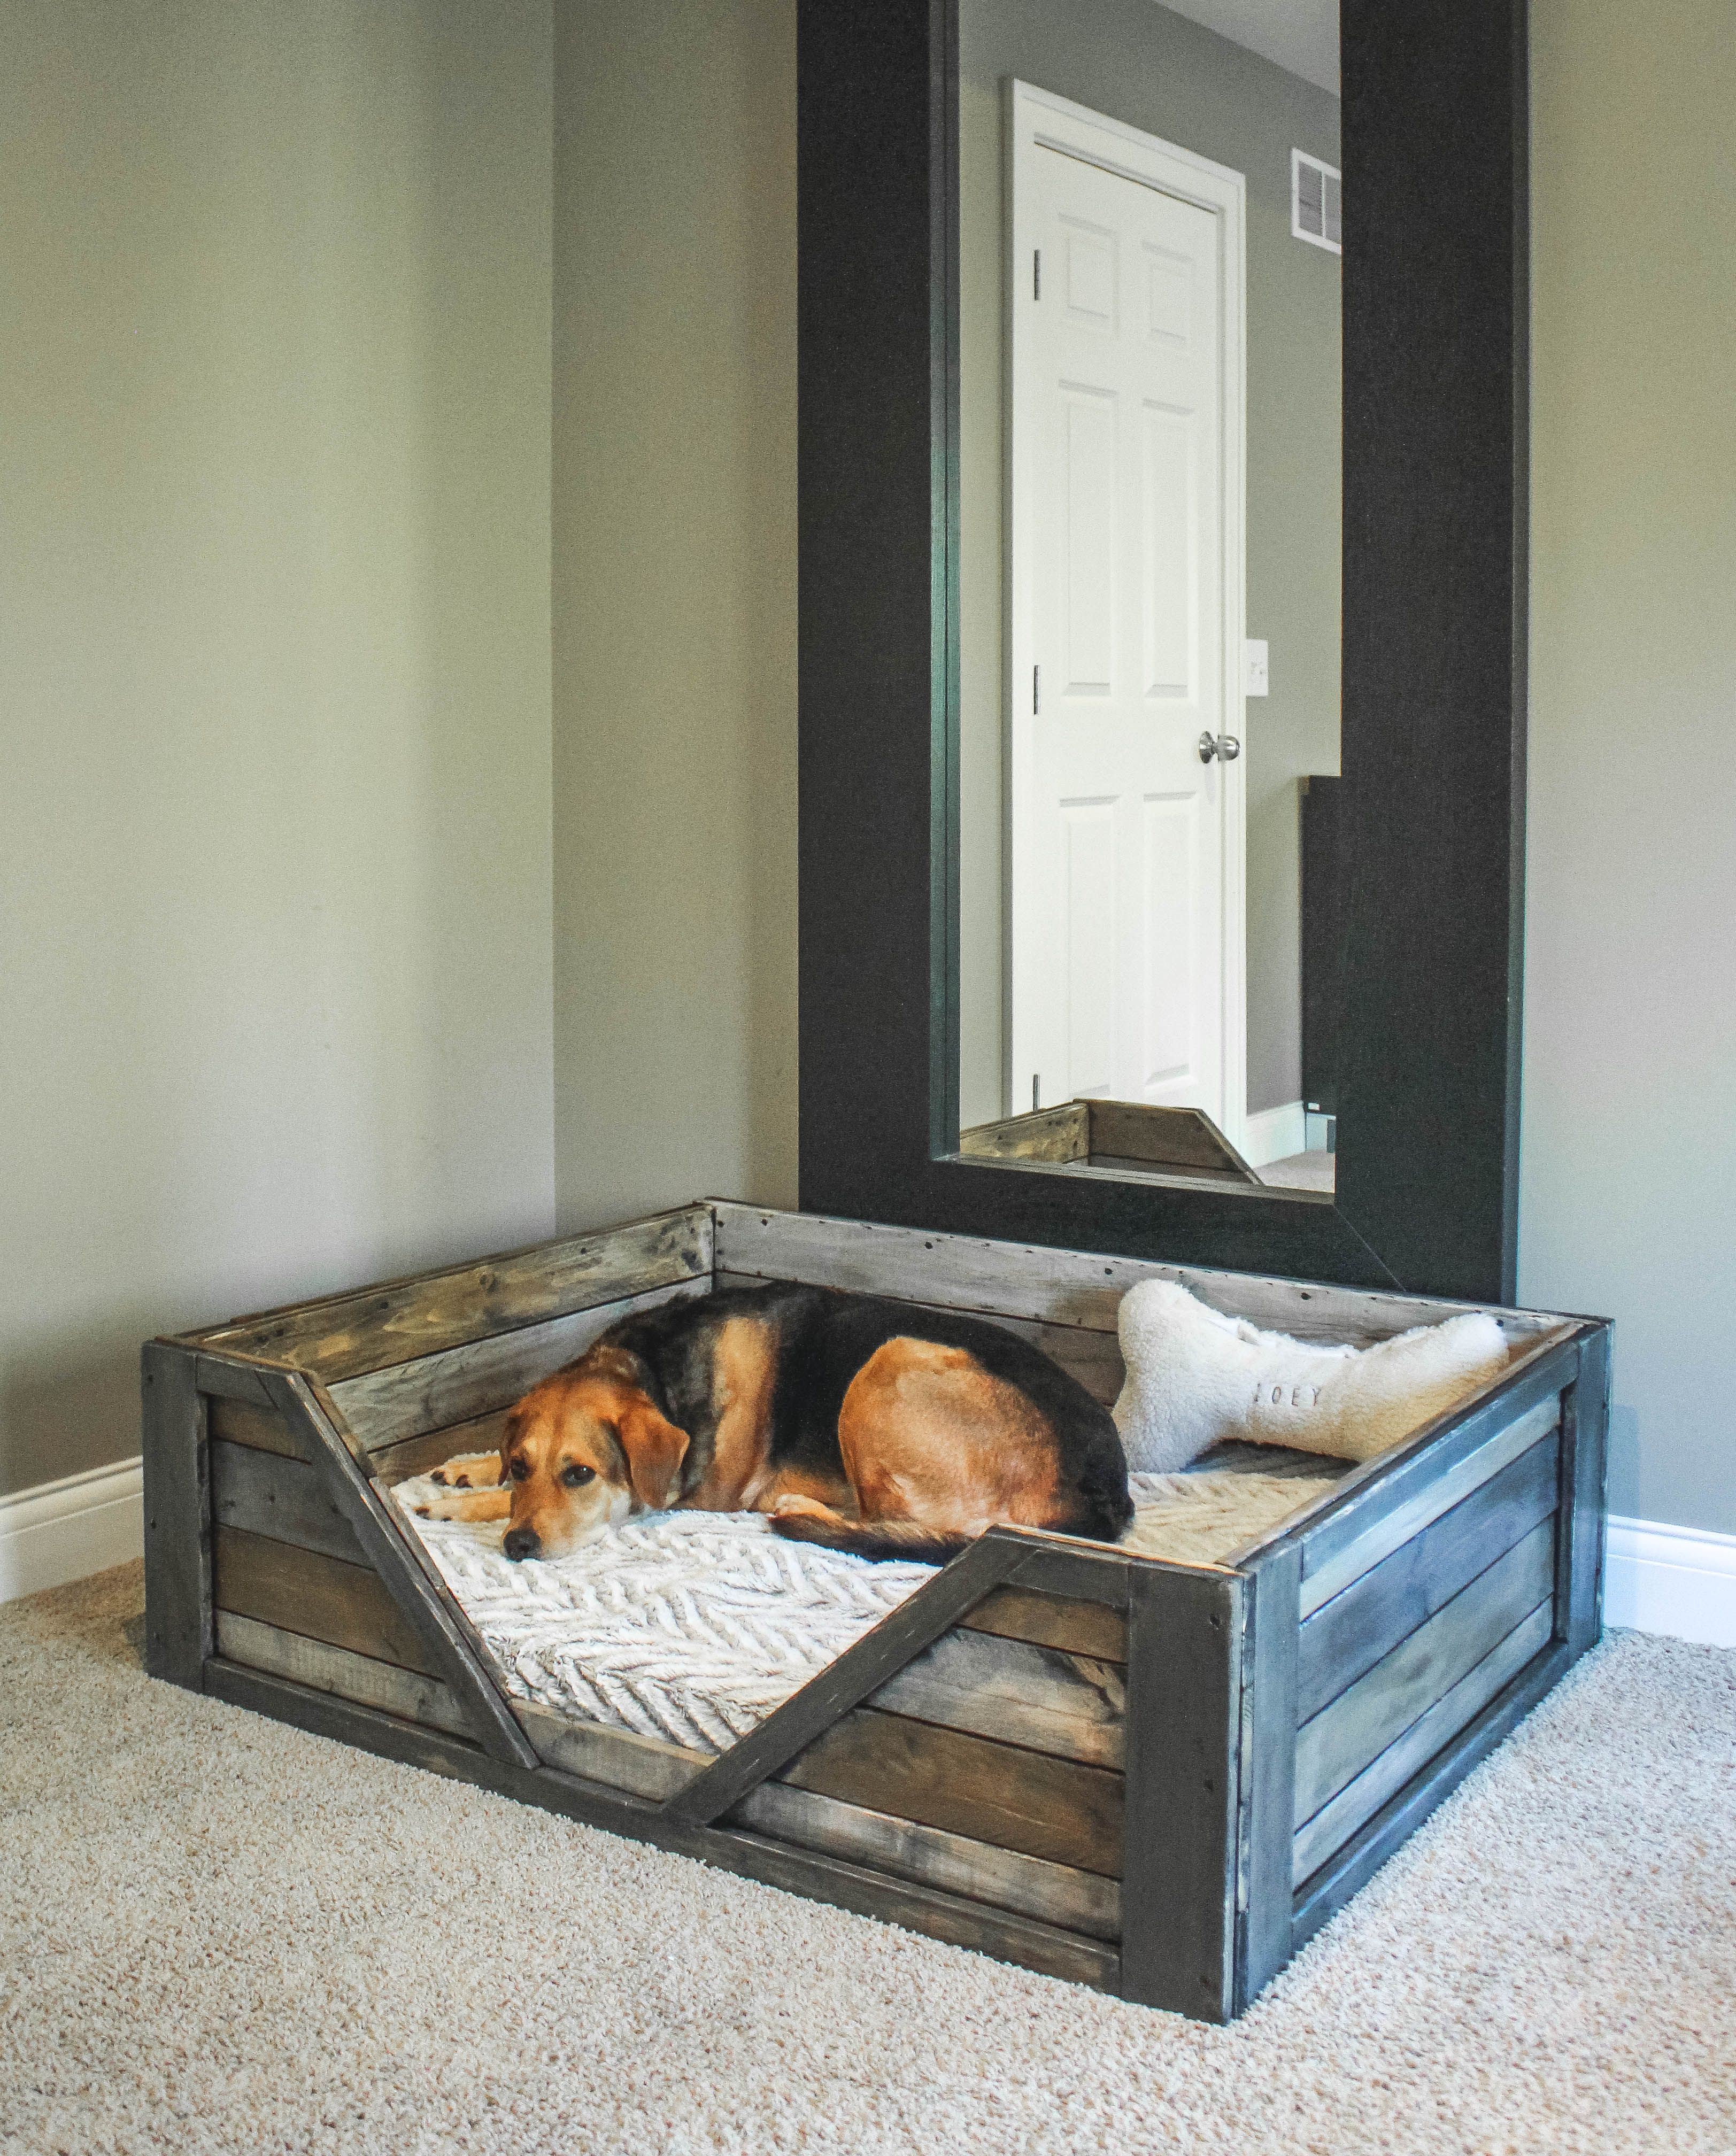 DIY PALLET DOG BED   Such A Great Project!